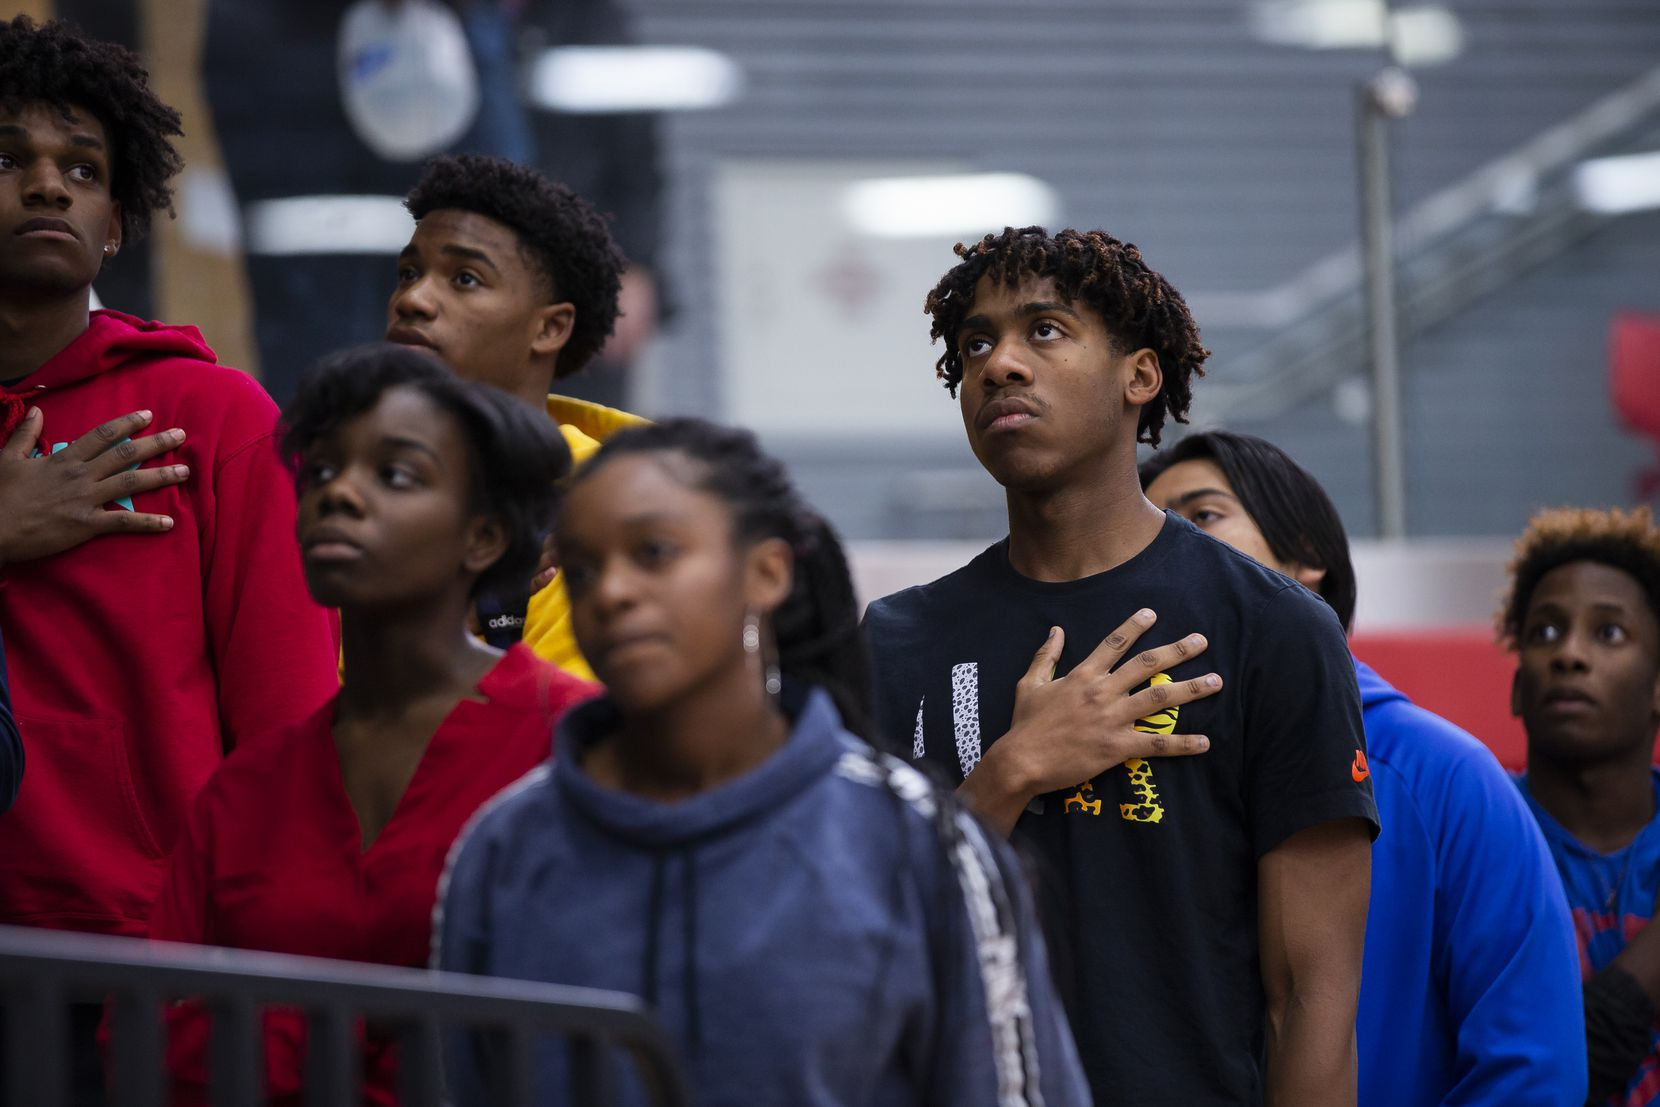 Allen High School junior Devon Chatman, 16, pauses for a moment of silence remembering Marquel Ellis Jr., 16, before a varsity basketball game on Nov. 18, 2019 in Allen. Ellis, a sophomore, was fatally shot at a Plano home late Saturday, according to police and school officials. (Juan Figueroa/ The Dallas Morning News)